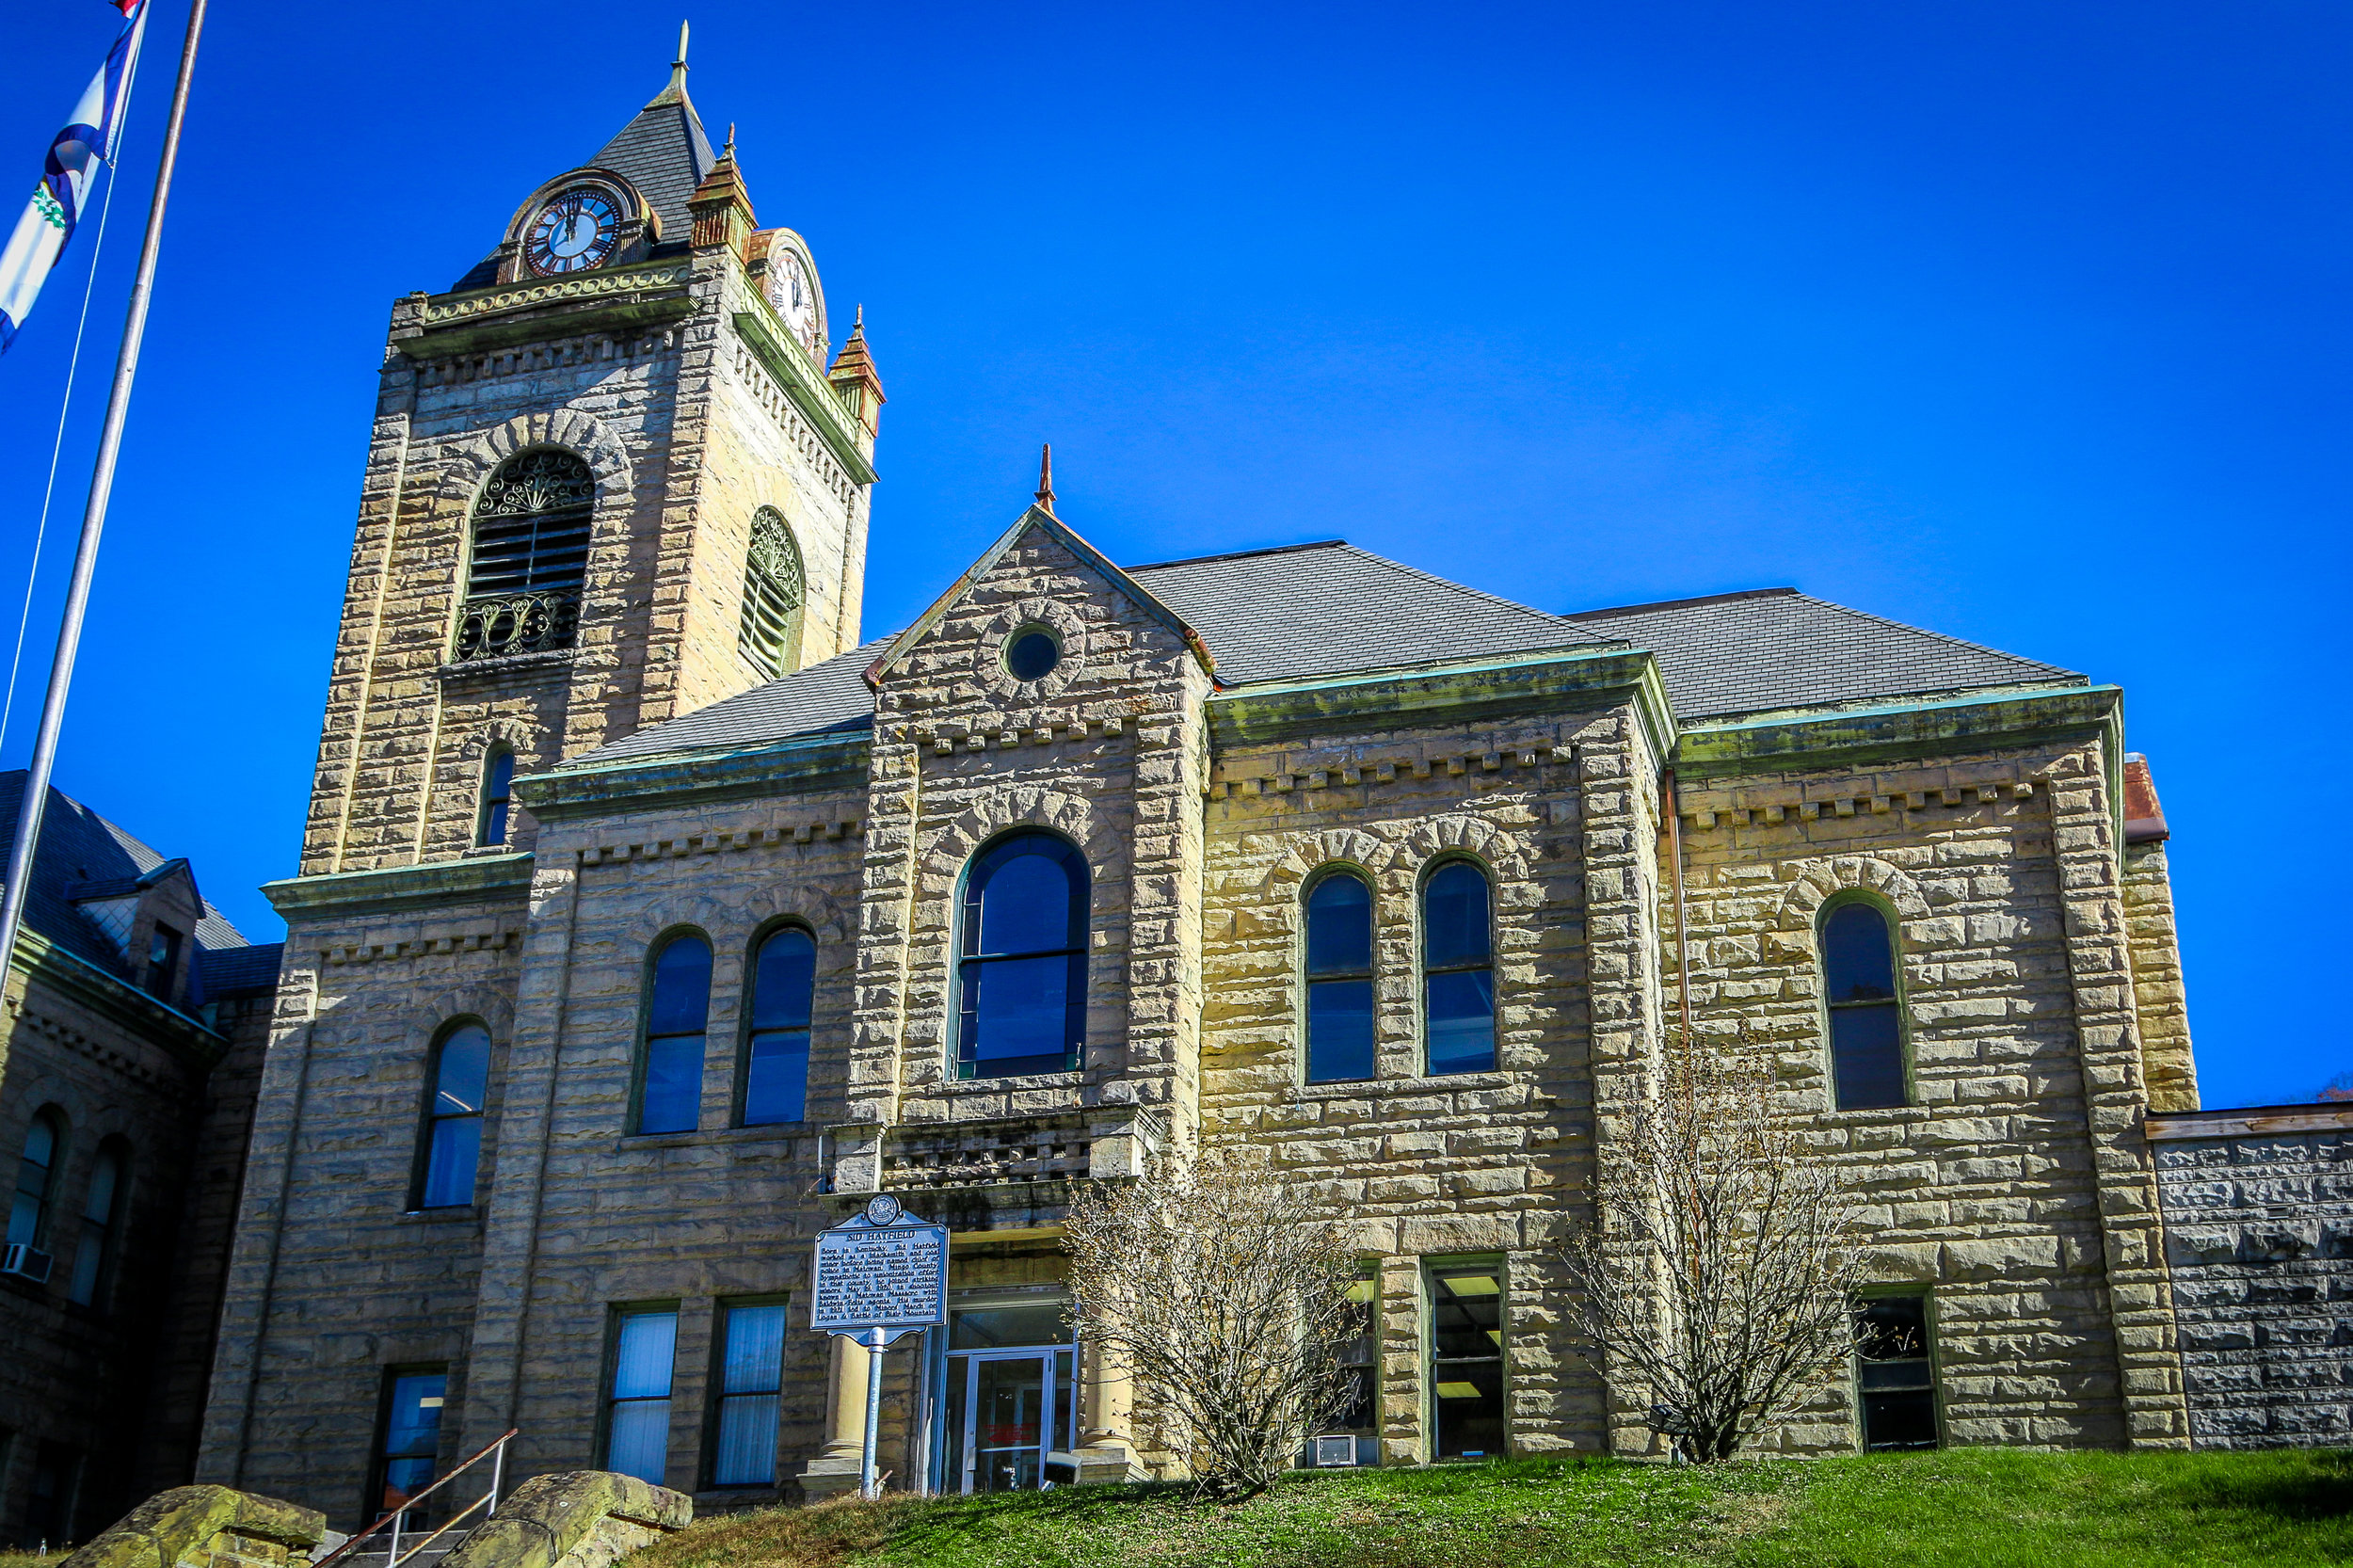 McDowell County Courthouse, Welch